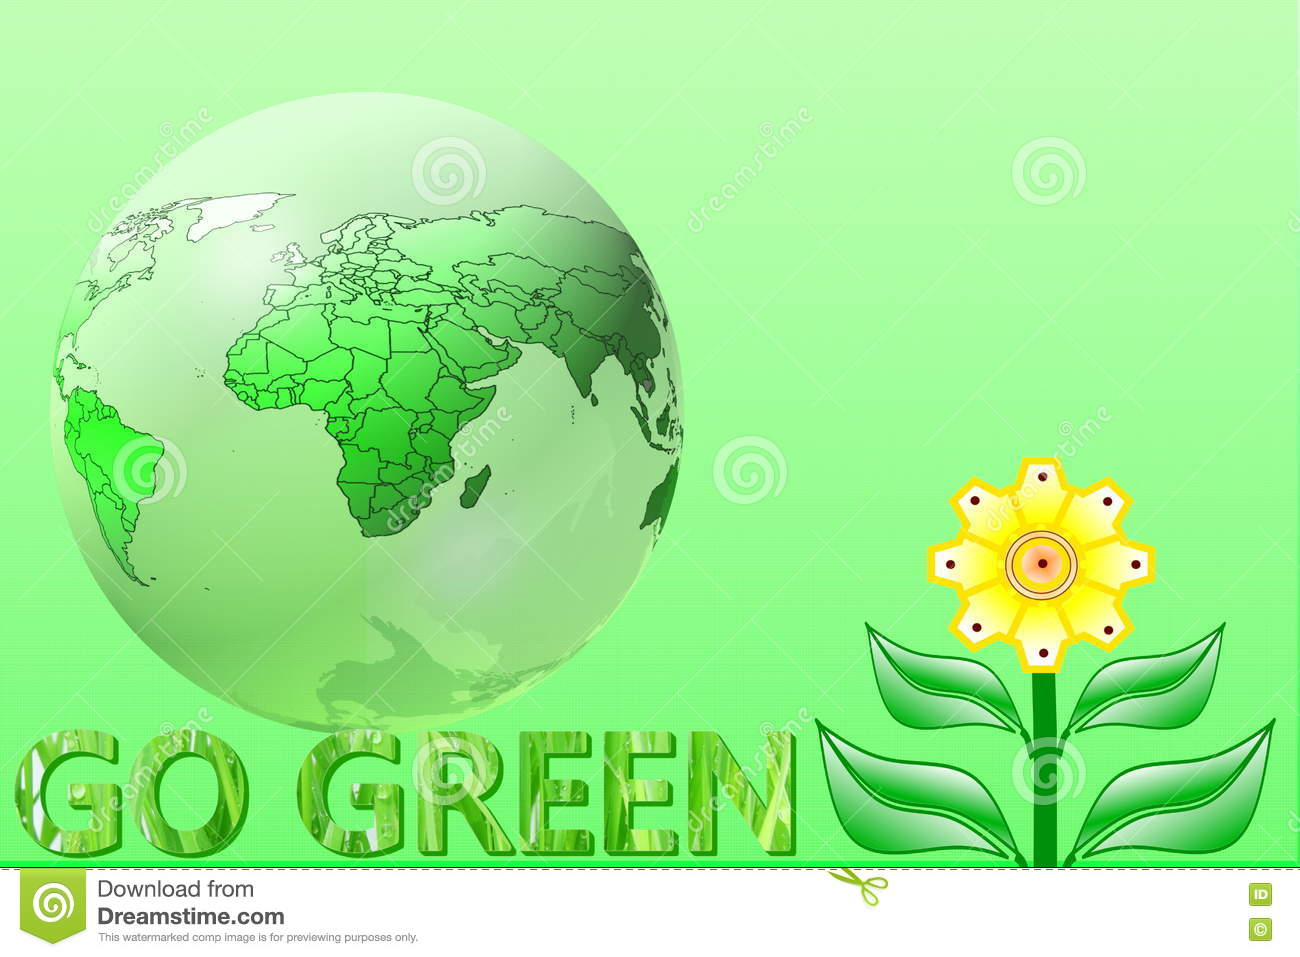 Go Green Nature Ecology Organic Concept Stock Illustration Illustration Of Globe Concept 78565941